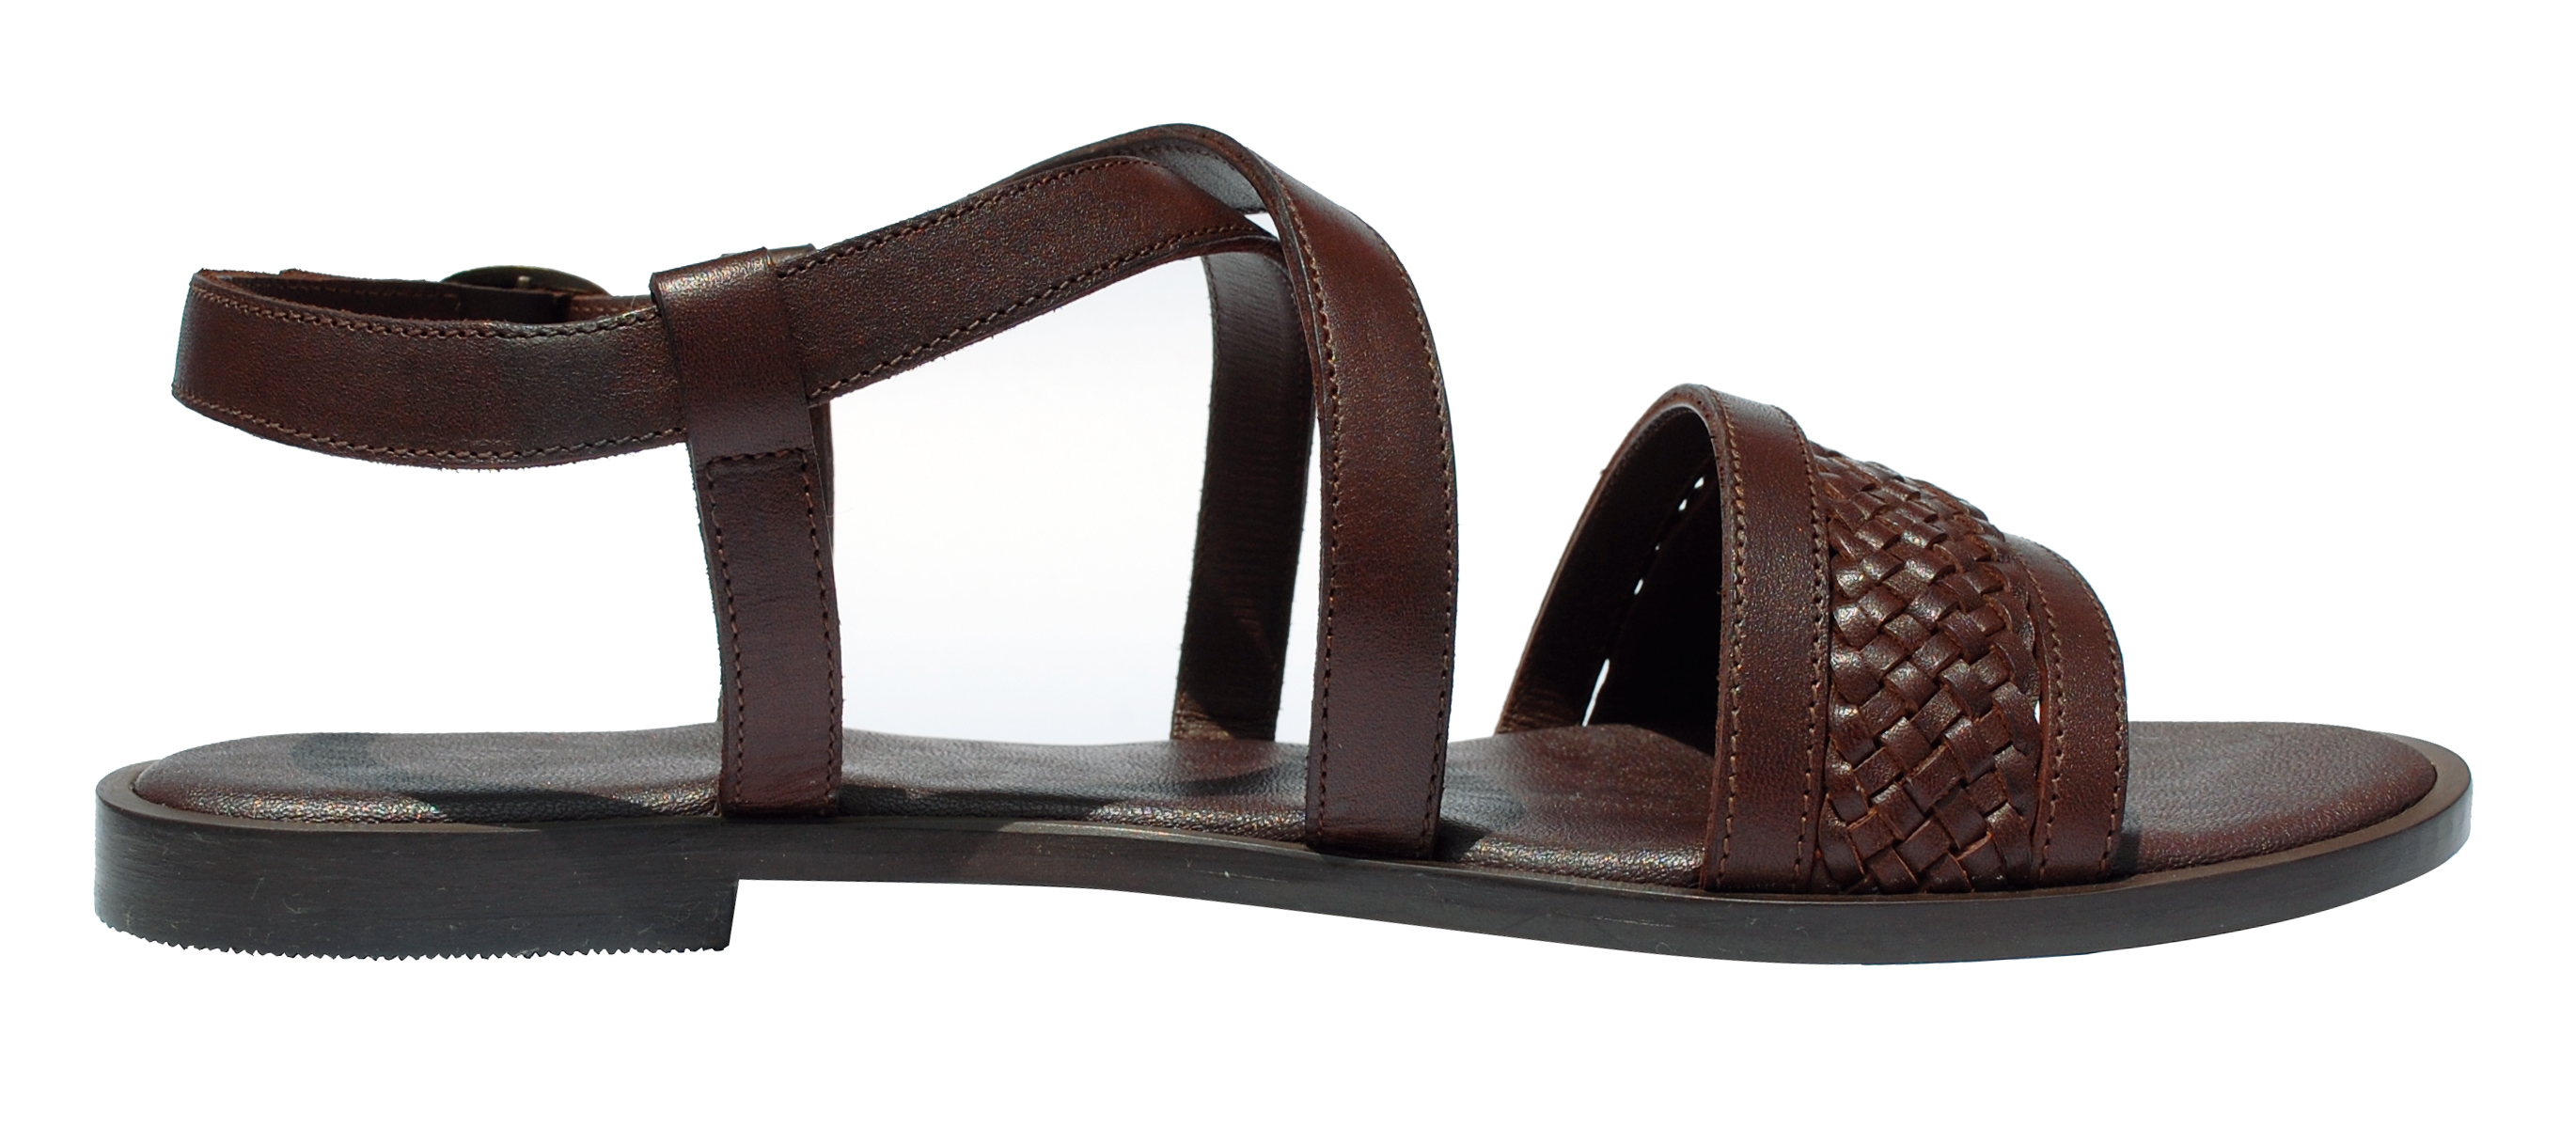 Weaved leather strappy sandal